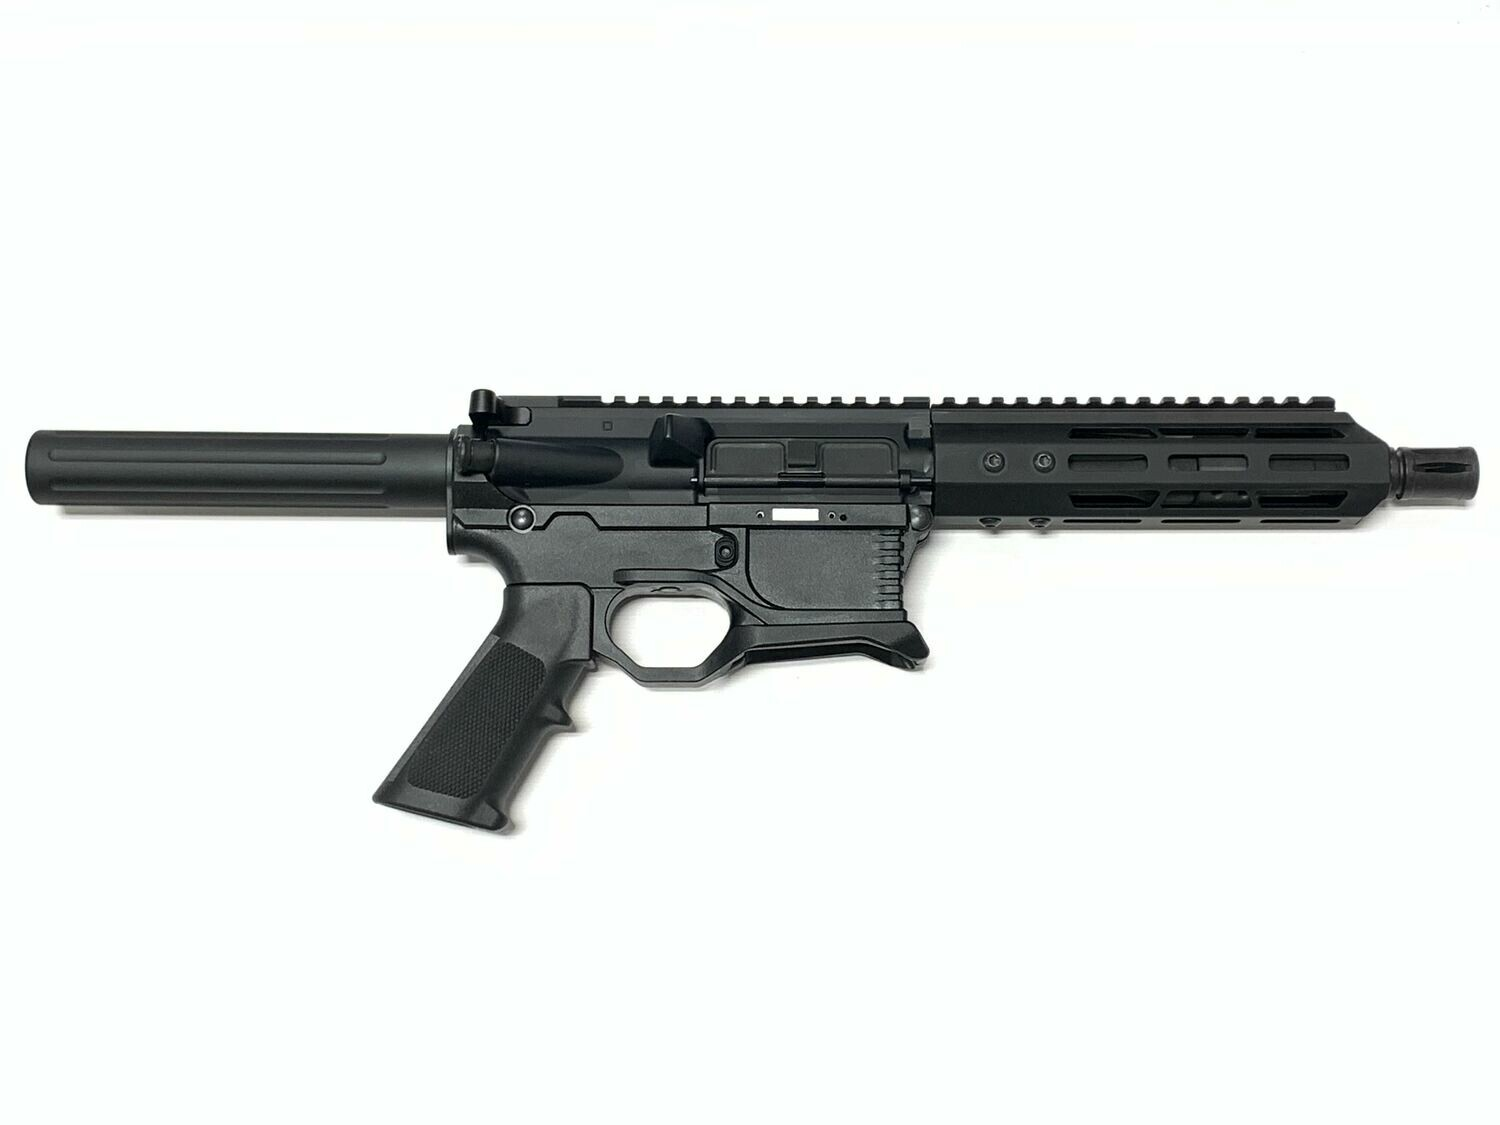 "80% AR-15 Pistol Kit - 5.56 NATO 7.5"" Barrel, BCG, Charging Handle & Lower Parts Kit - Polymer80 80% Lower"